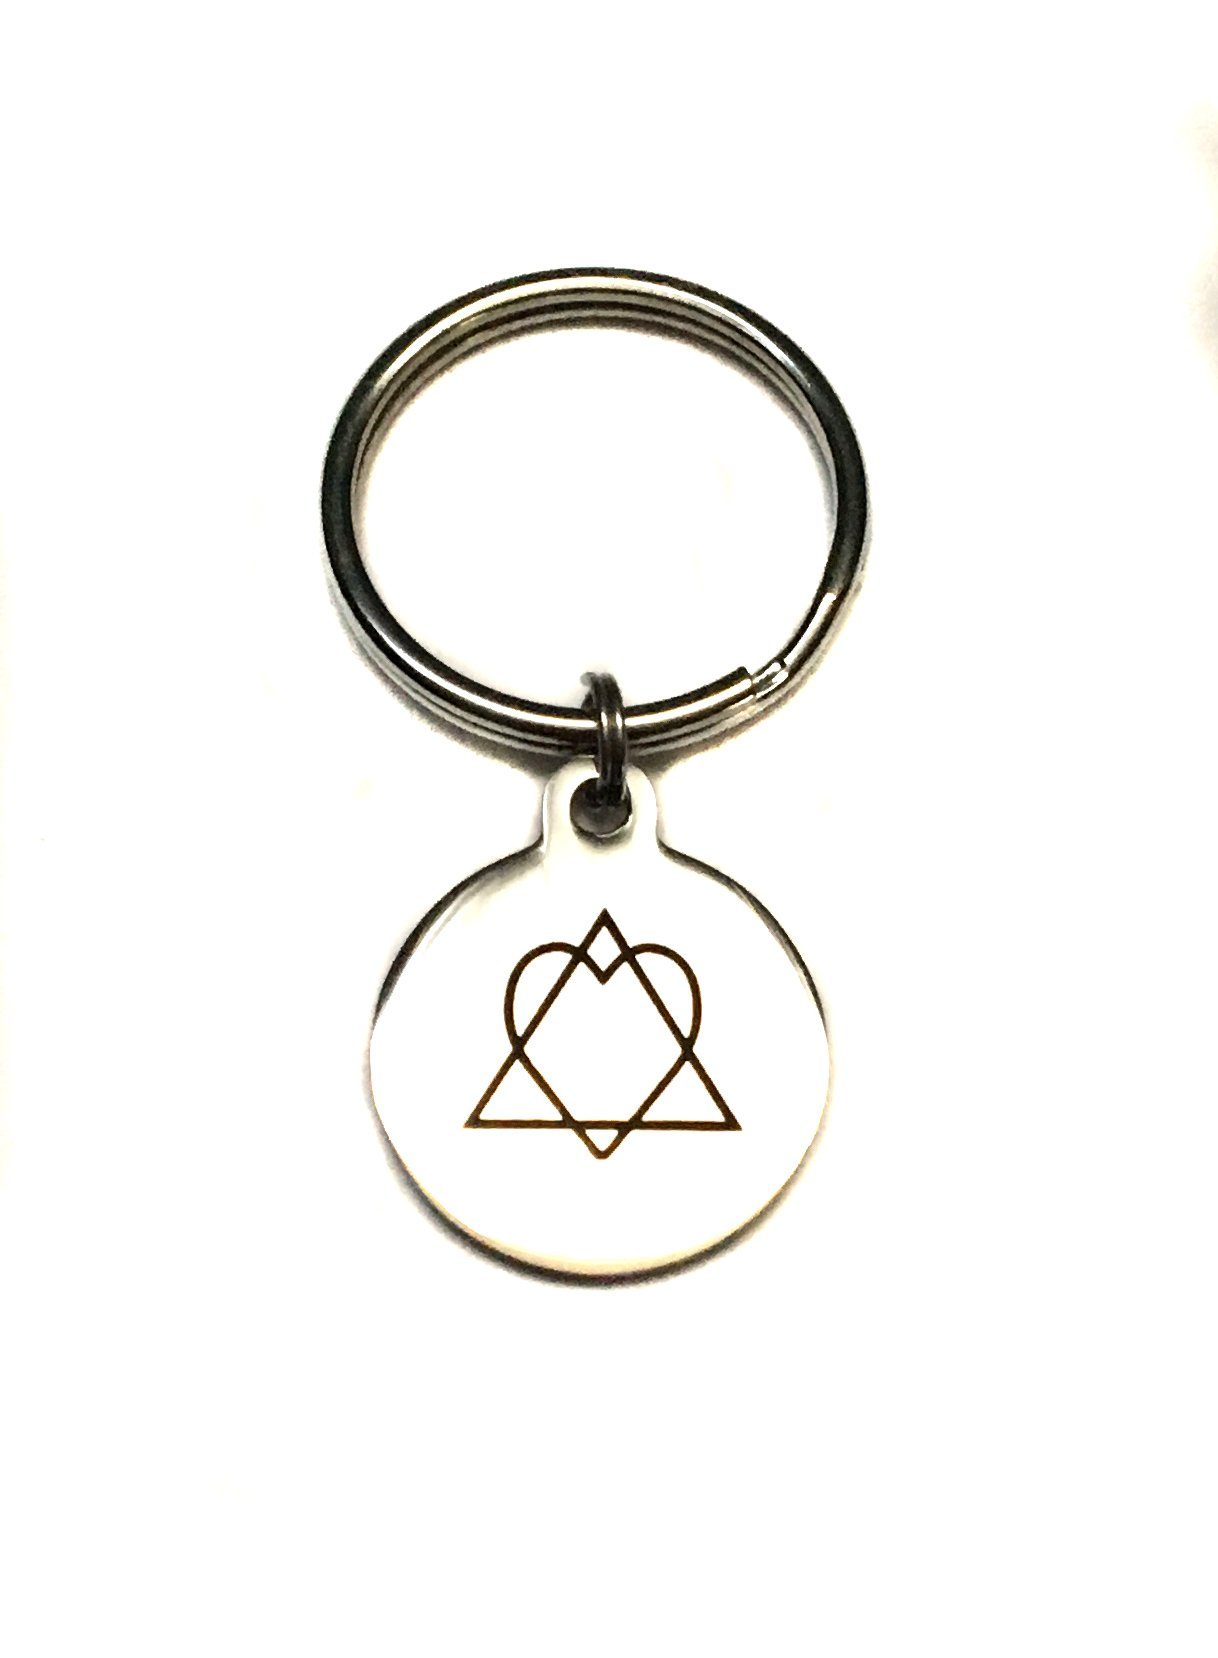 Stainless Steel Intertwined Heart and Triangle Adoption Symbol Charm Keychain, Bag Charm Gift